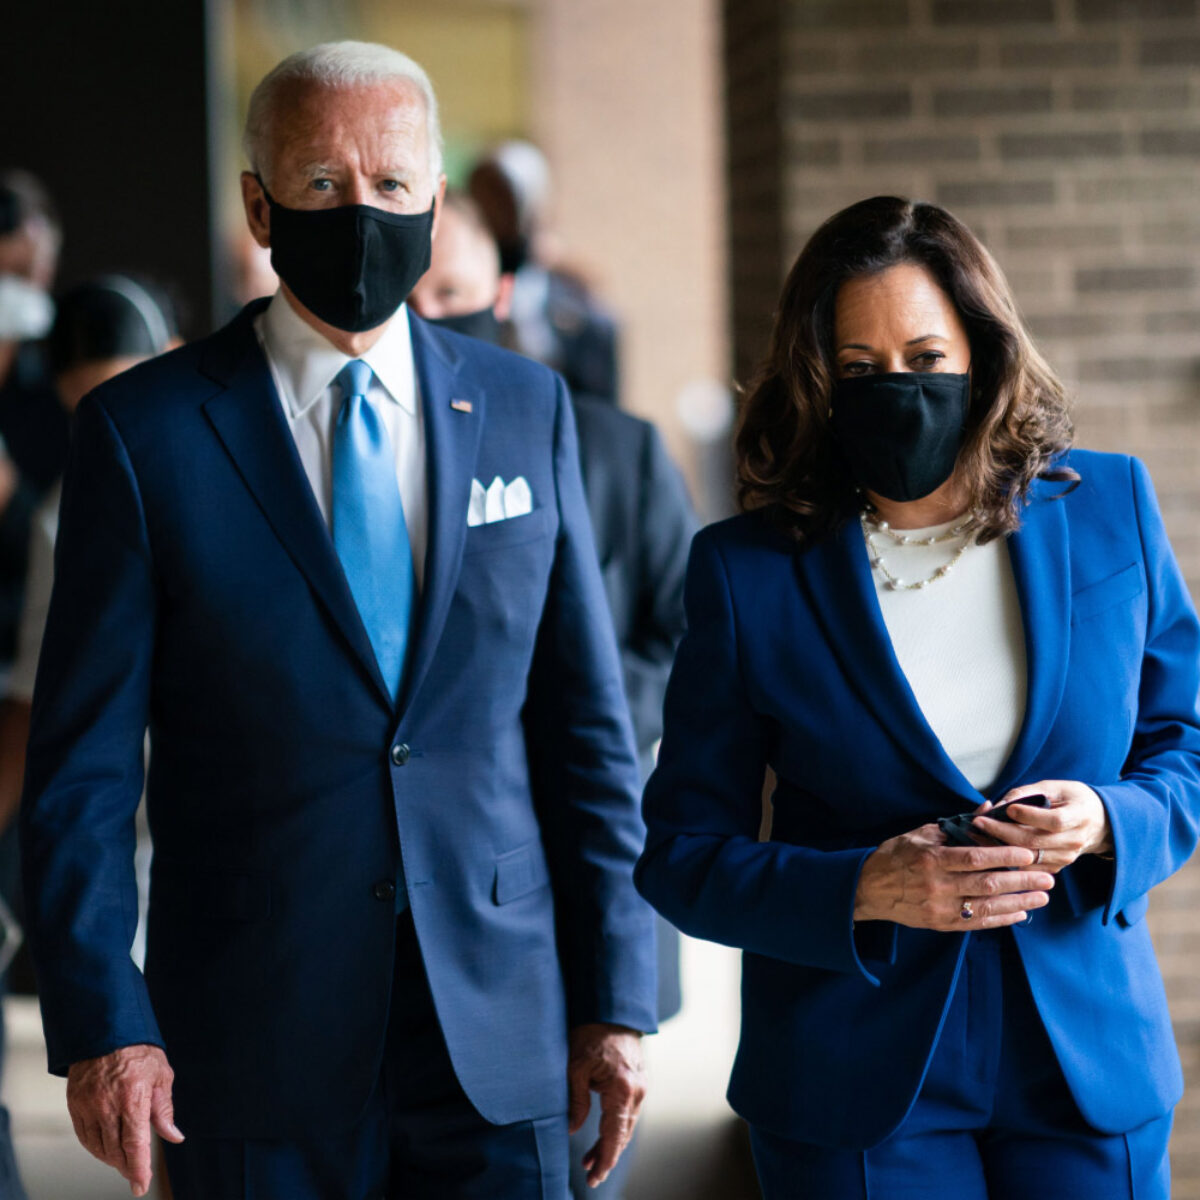 Biden Ignores His Own Mask Mandate on First Day. 'Bigger Issues to Worry About,' Says WH Press Secretary